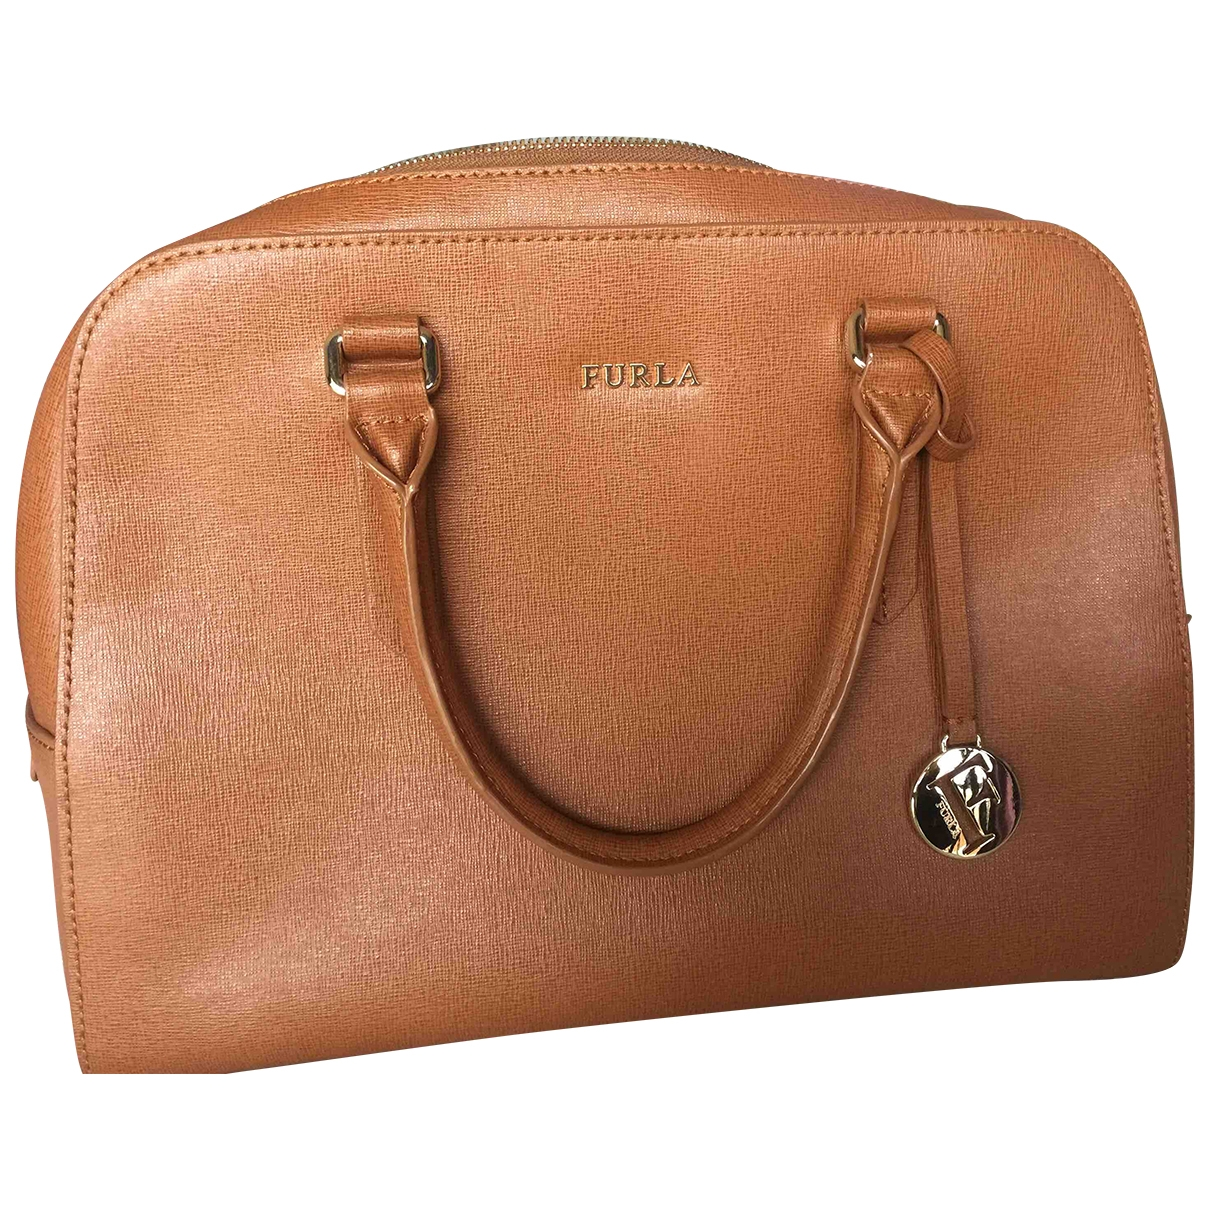 Furla \N Camel Leather handbag for Women \N